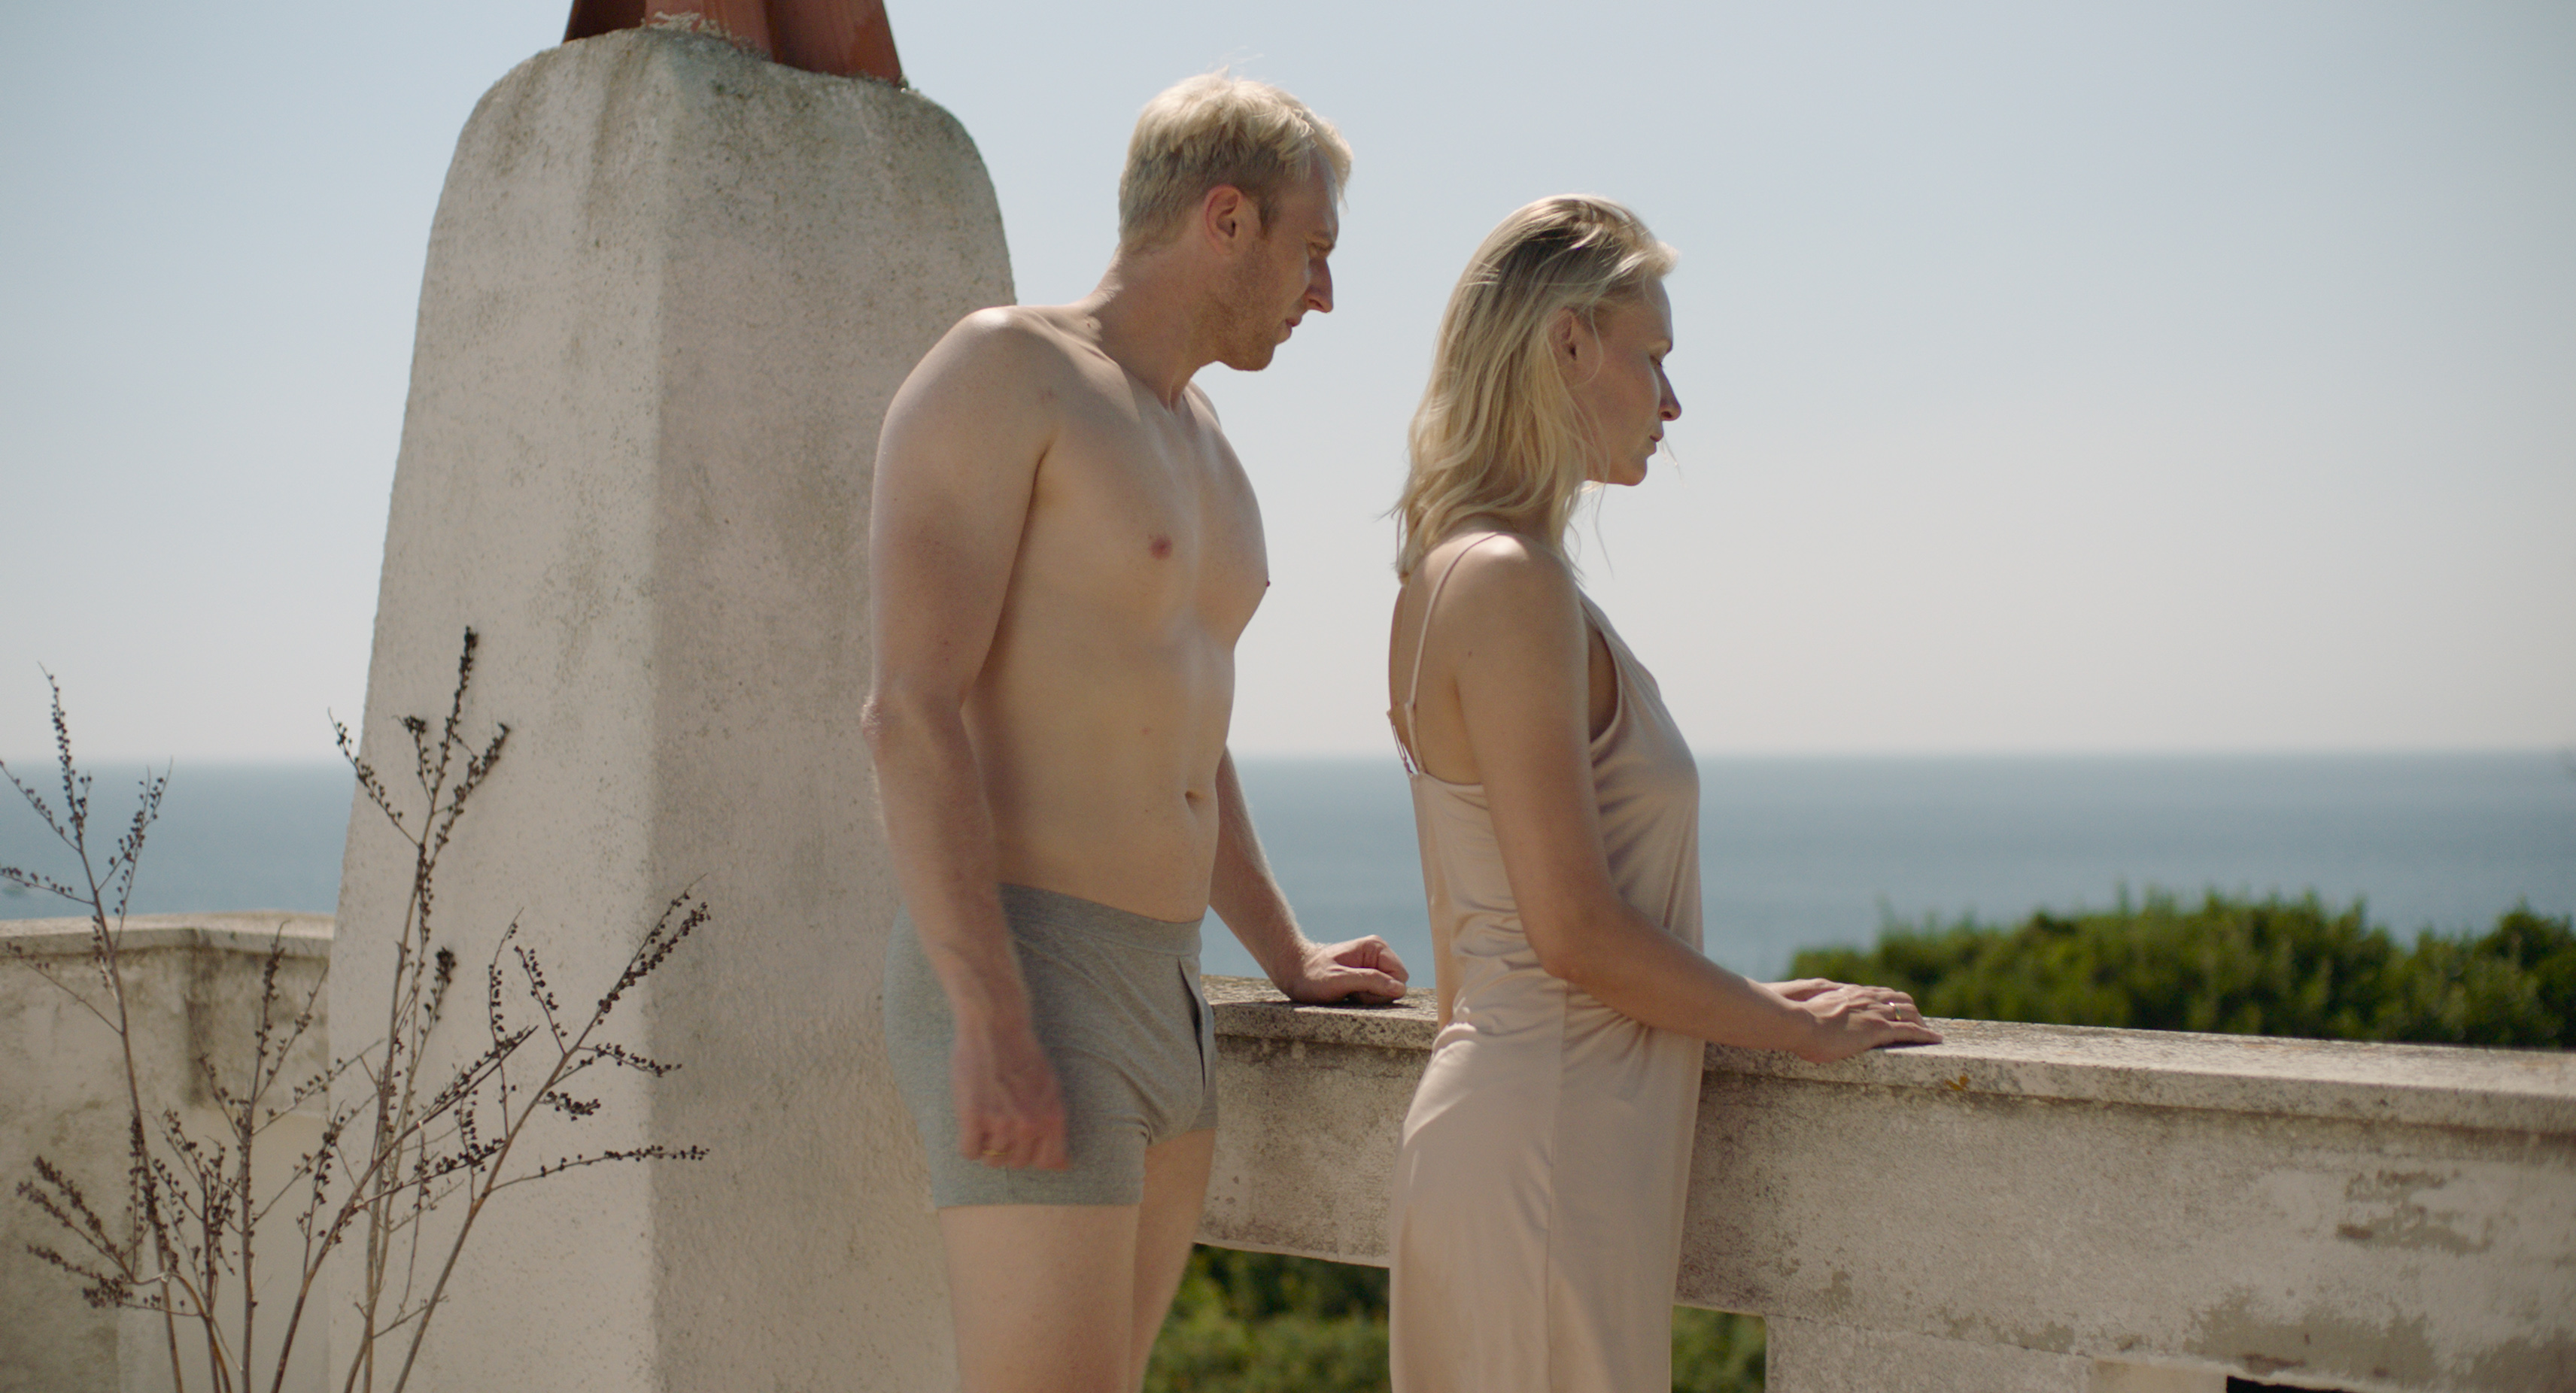 Dobromir Dymecki in grey boxers and Agnieszka Zulewska in a cream nightgown stand on a stone balcony, looking out into the distance.